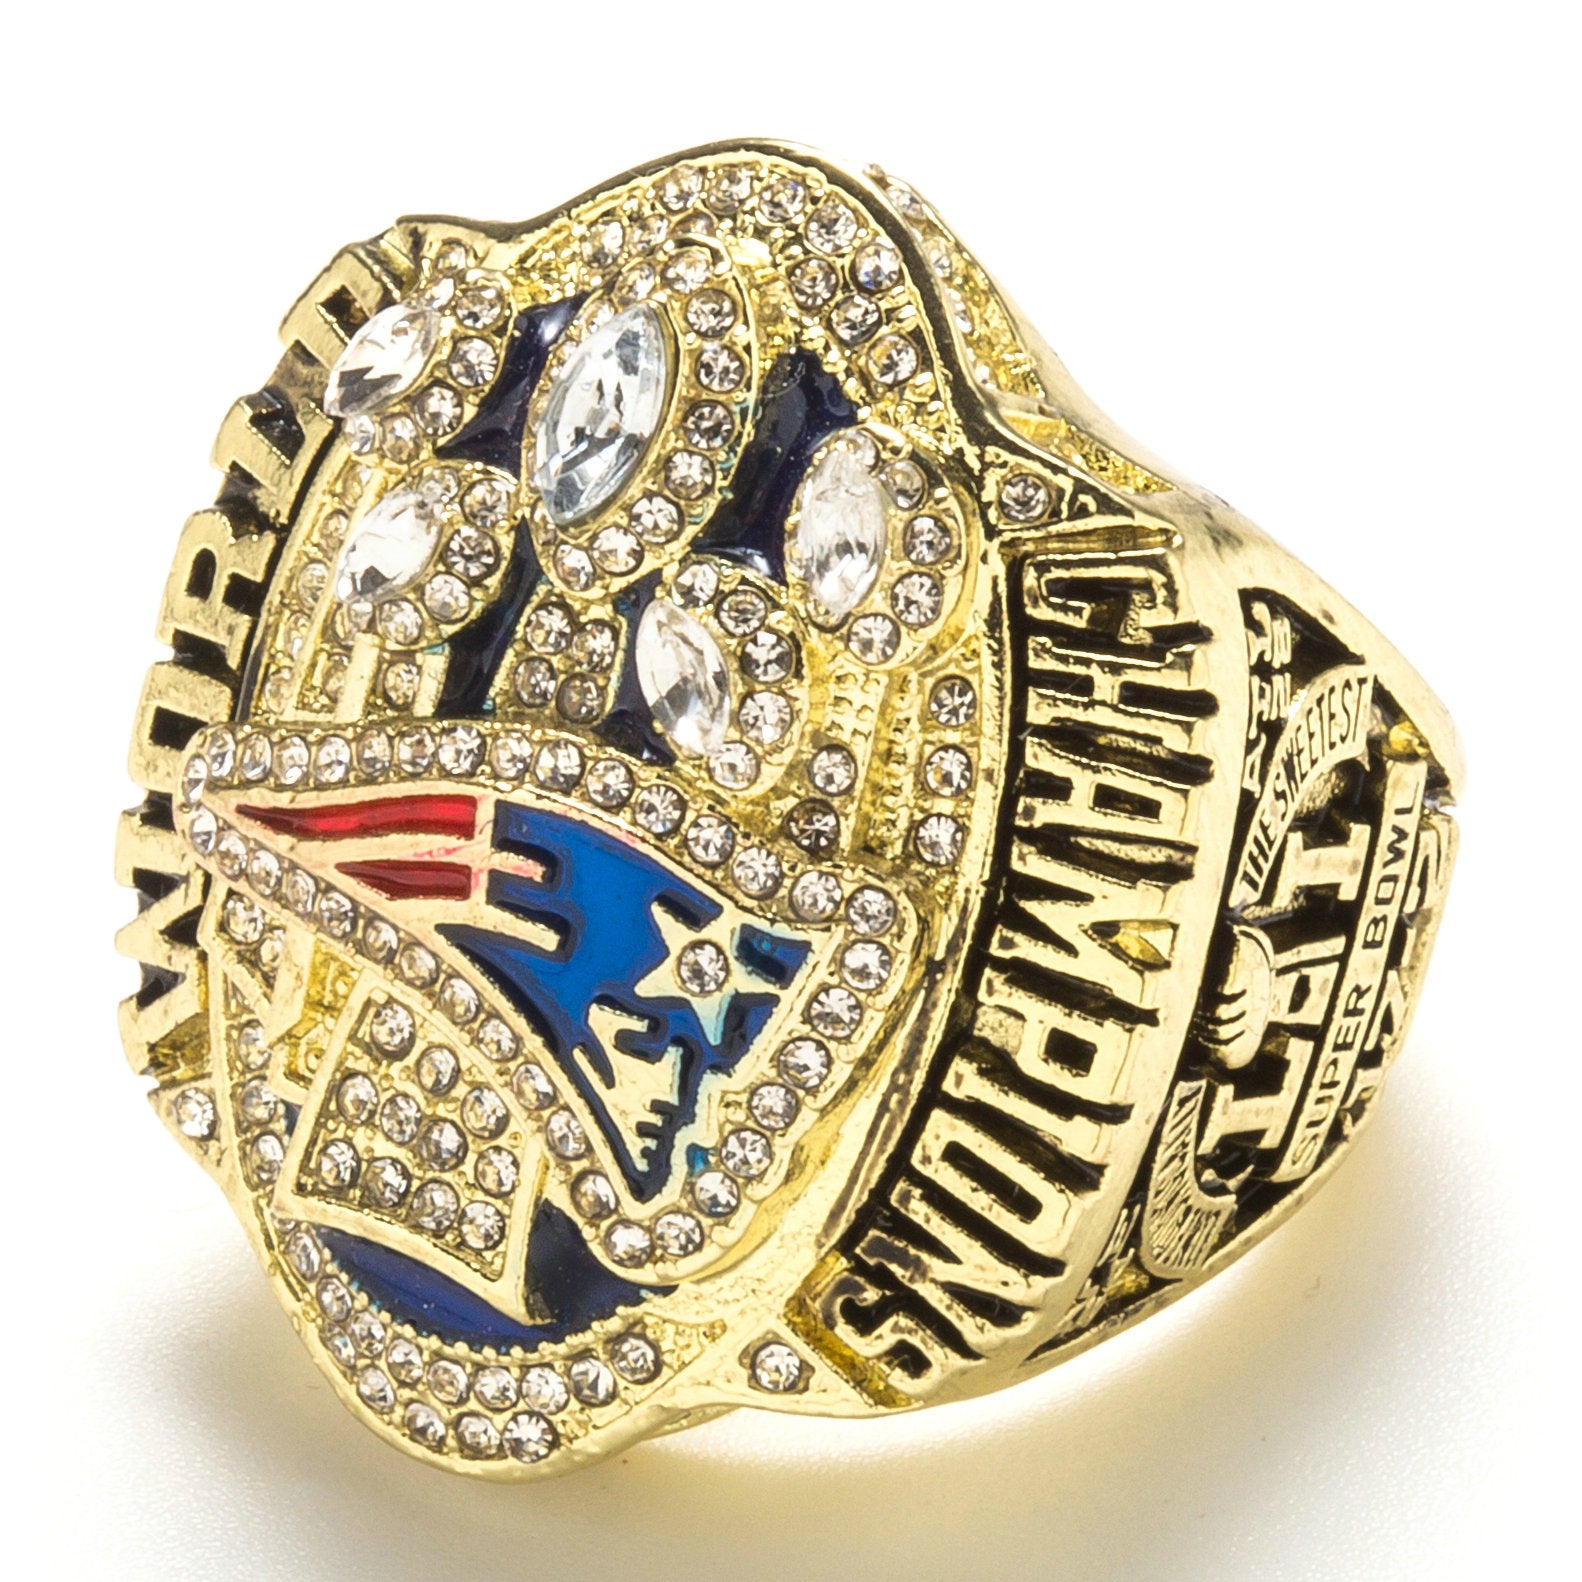 fame sports of family w hall lg letter sid auctioncategory ring rings personal auctions gillman nfl